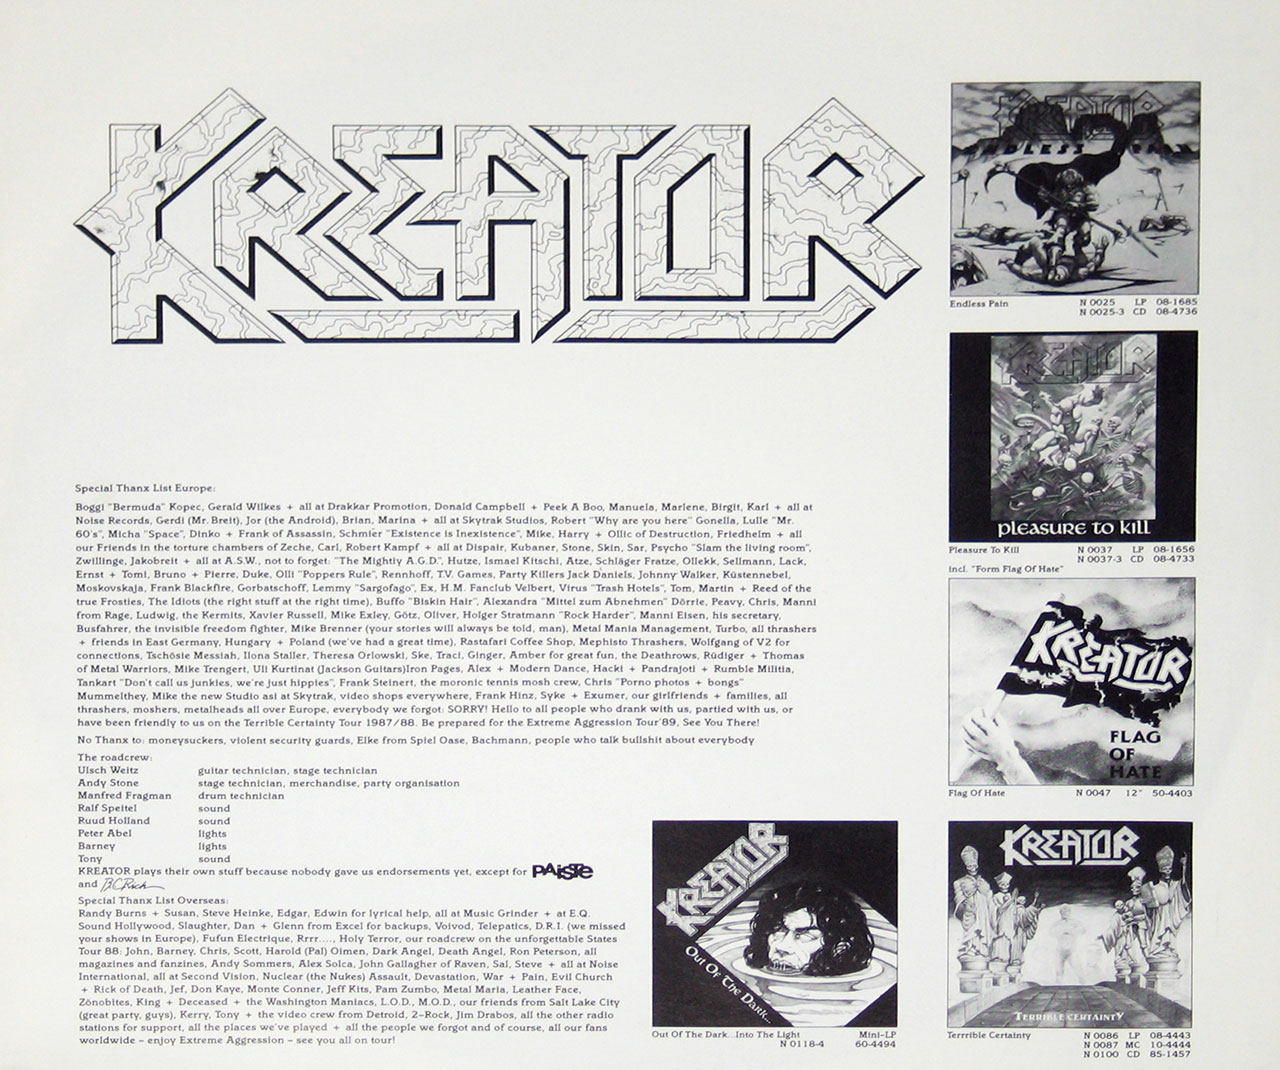 Kreator Extreme Aggression